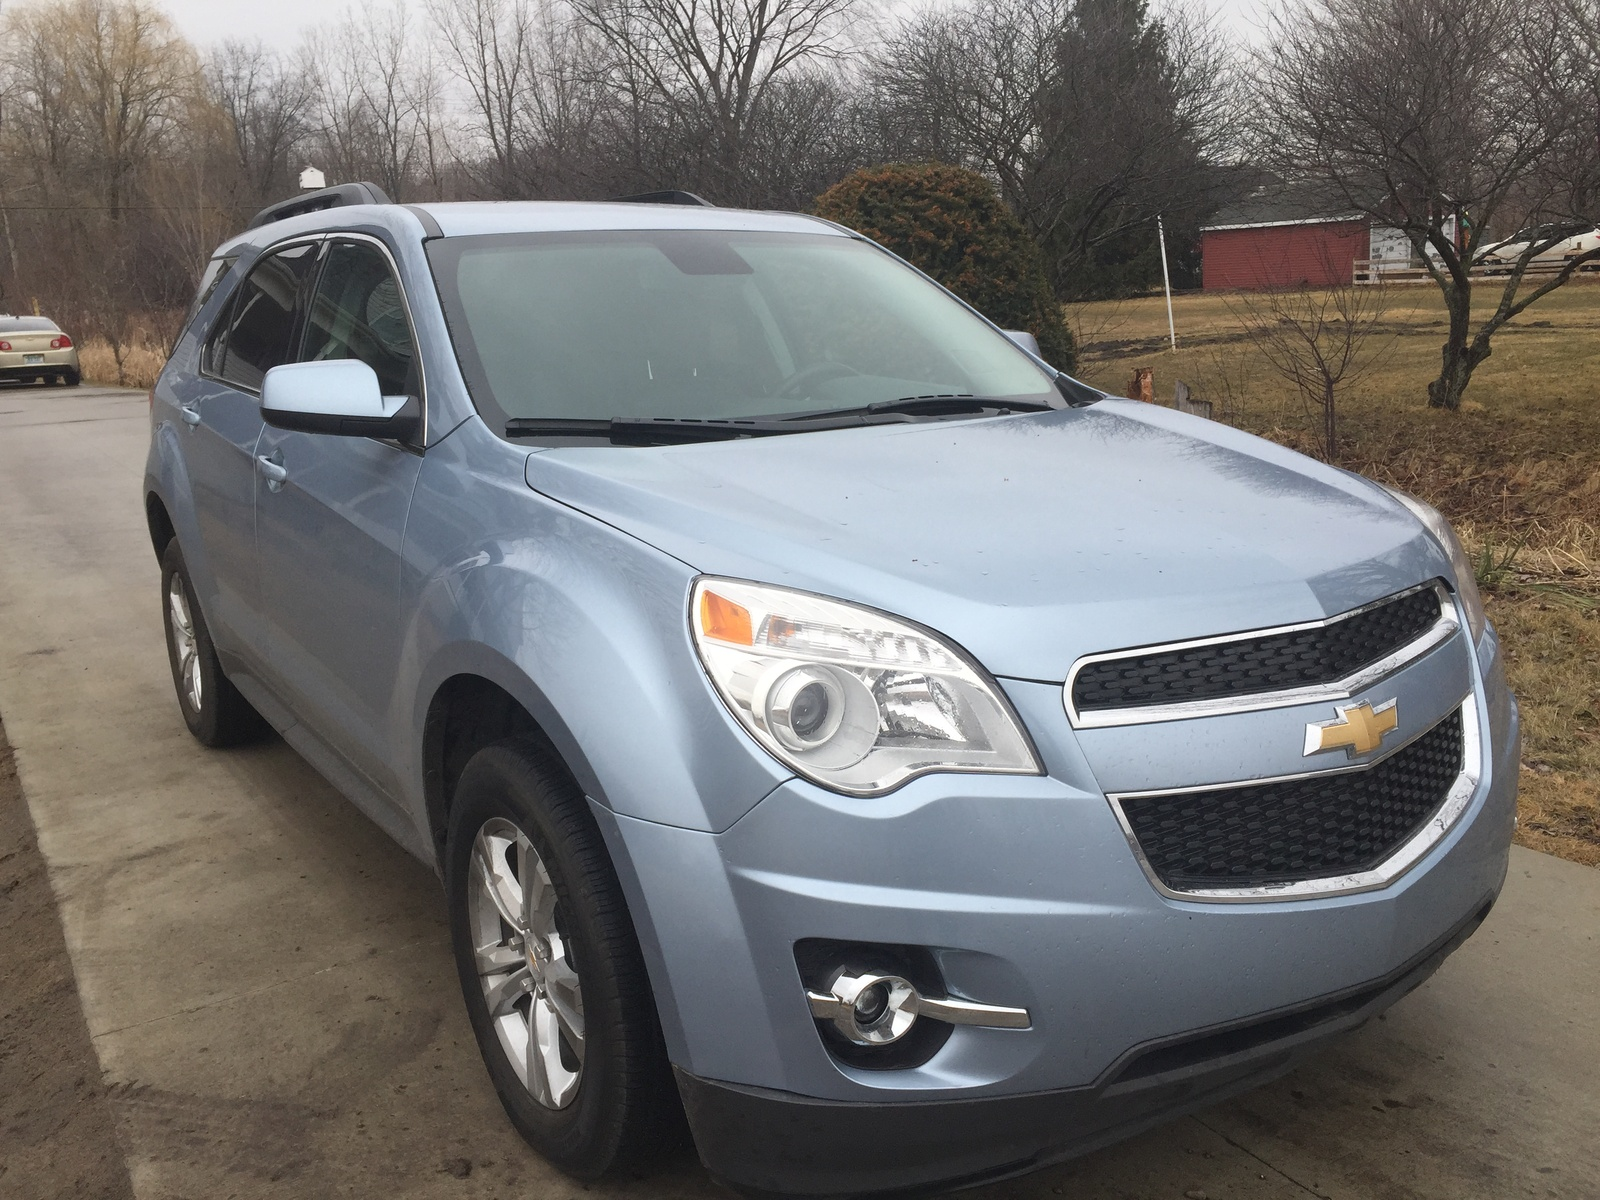 new 2015 chevrolet equinox for sale cargurus. Black Bedroom Furniture Sets. Home Design Ideas